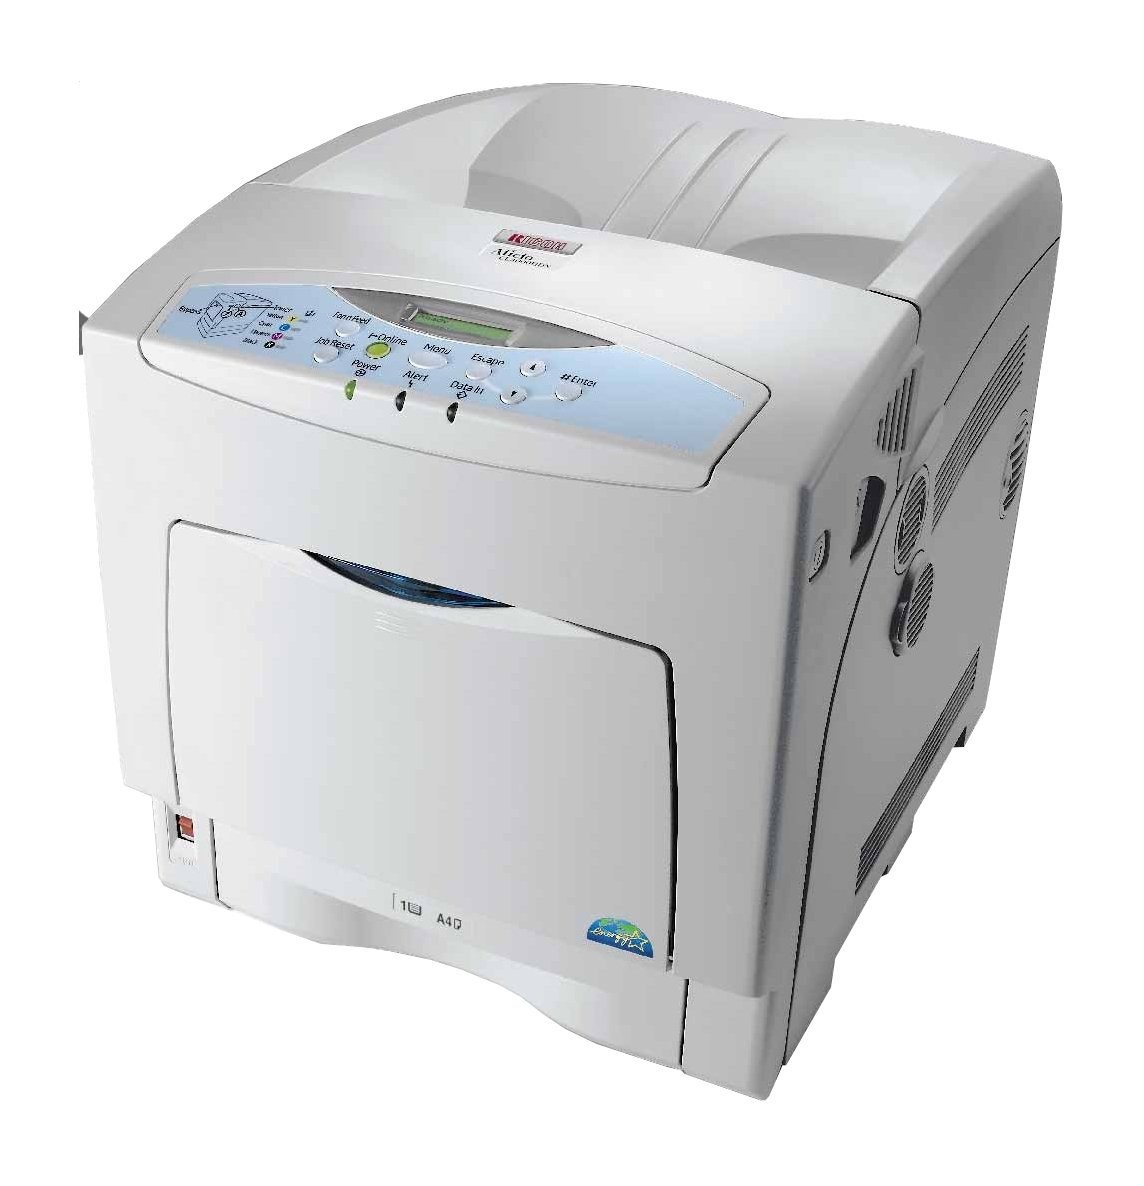 RICOH 4000DN DRIVERS FOR WINDOWS 7